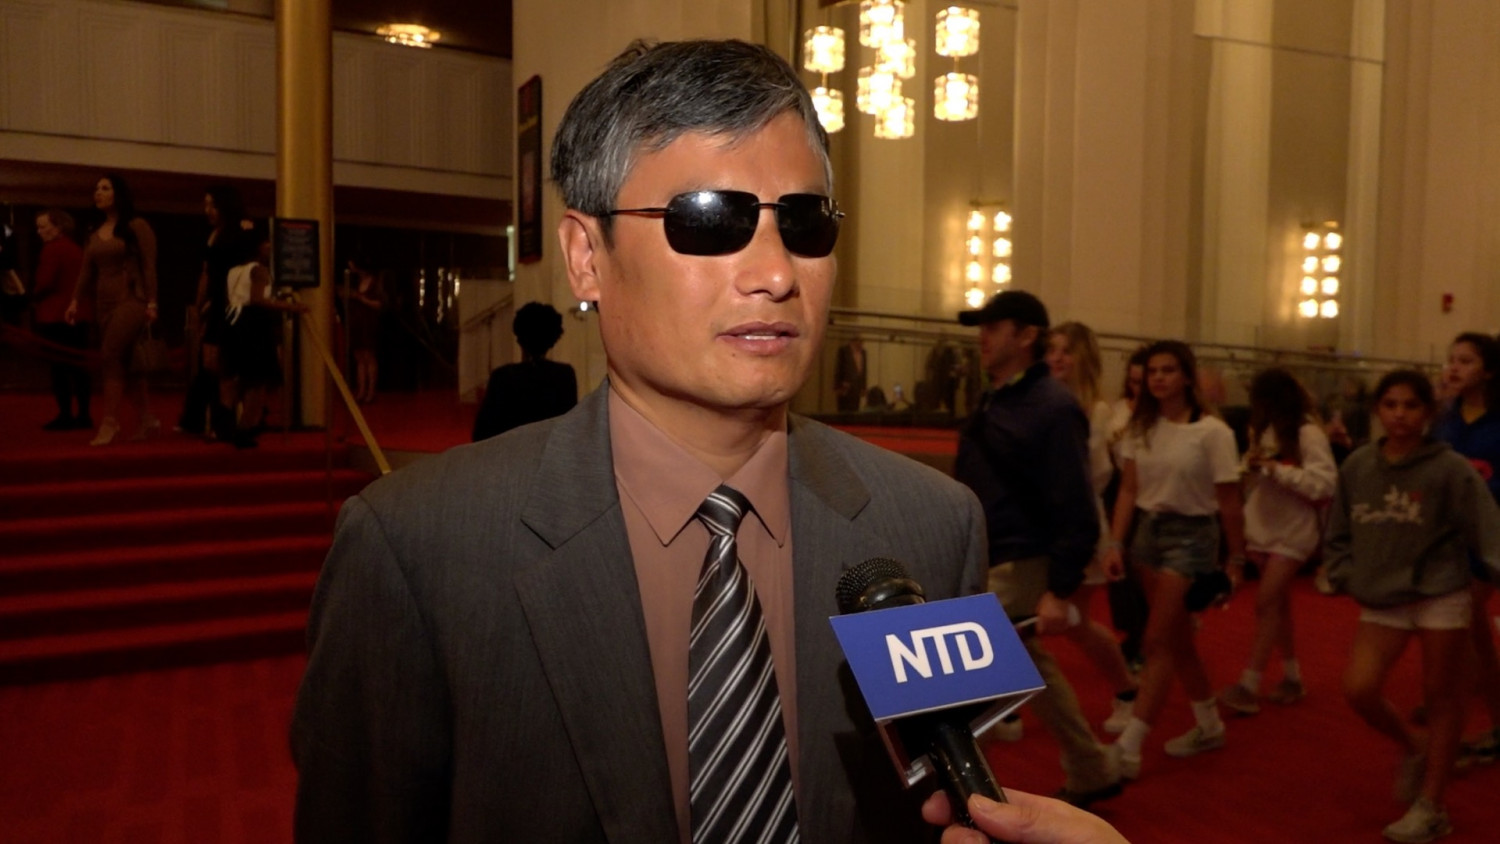 Prominent Human Rights Activist Chen Guangcheng Says Shen Yun